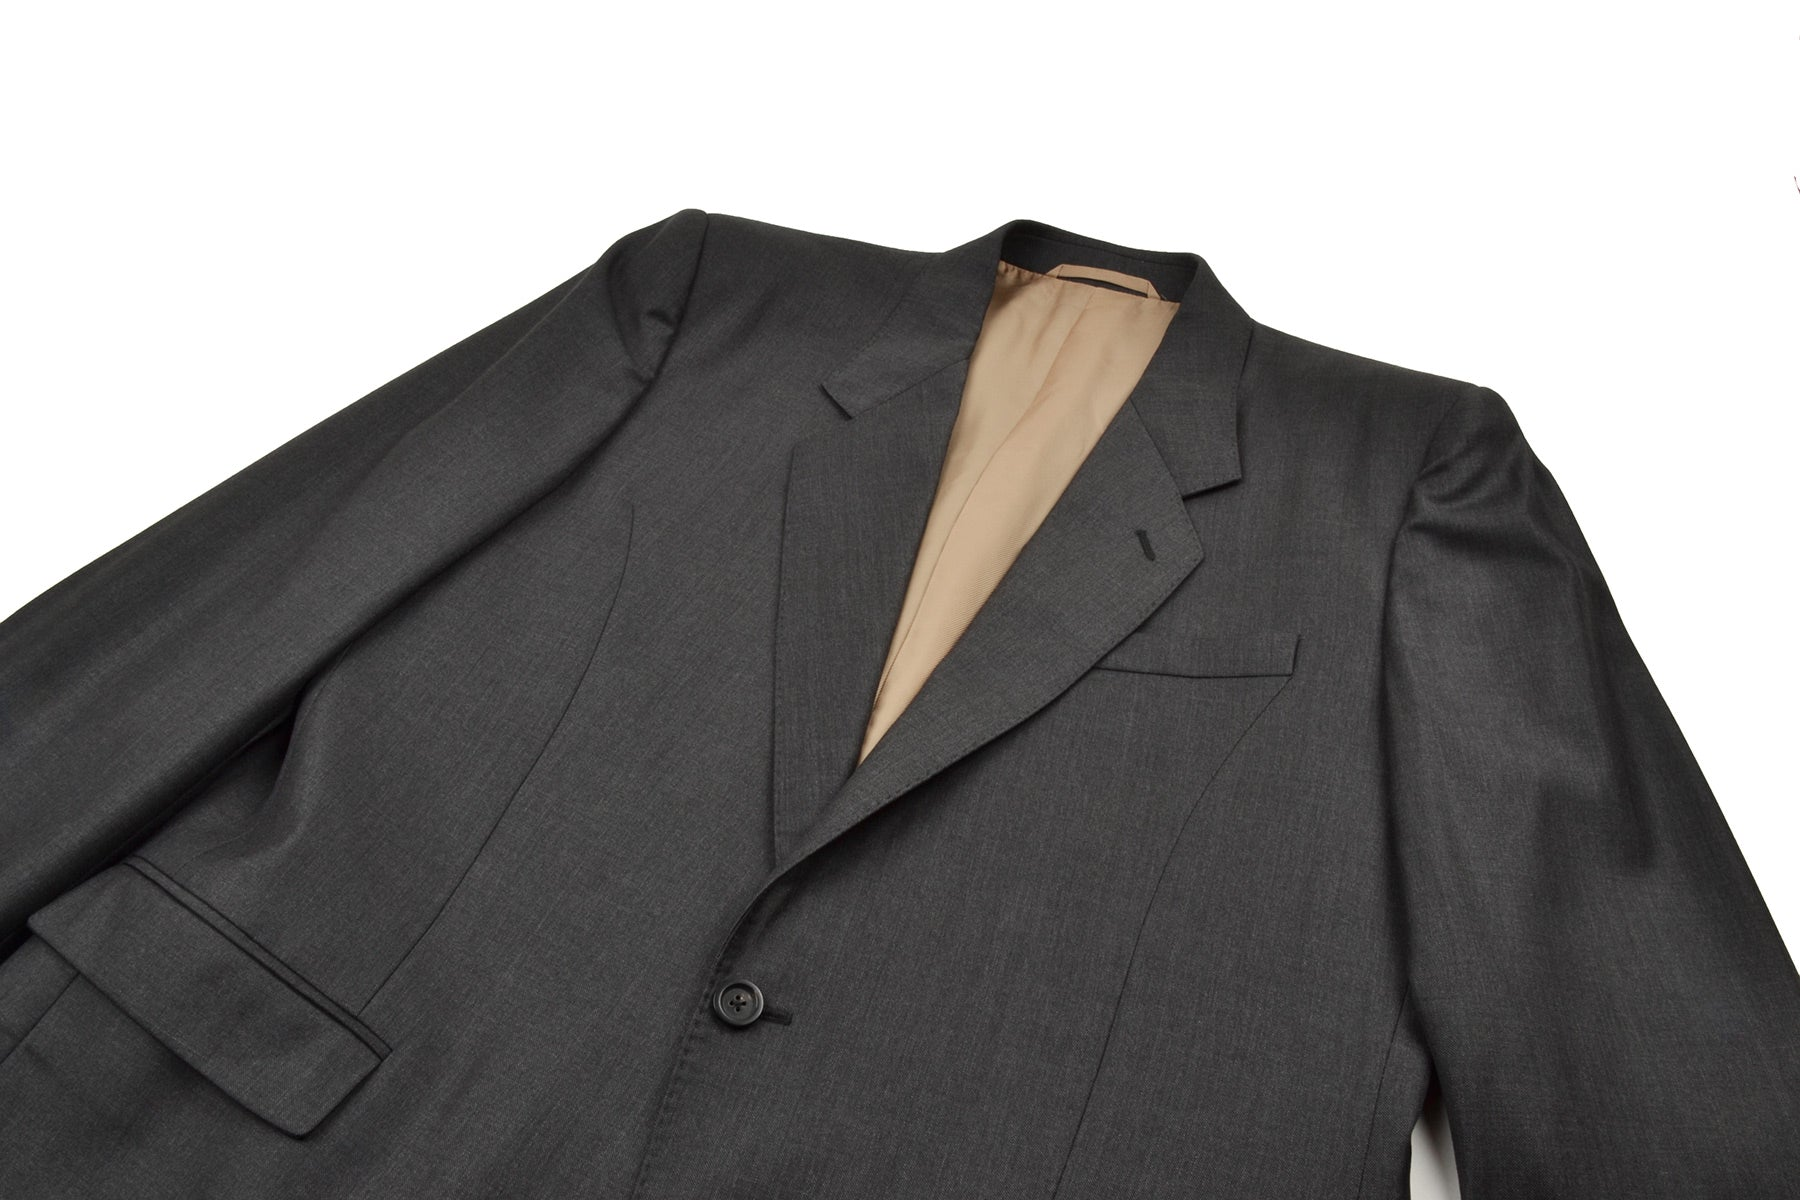 2008 A/W SARTORIAL CAPSULE COLLECTION SUIT IN WOOL/SILK BLEND WITH SIGNATURE STITCHING